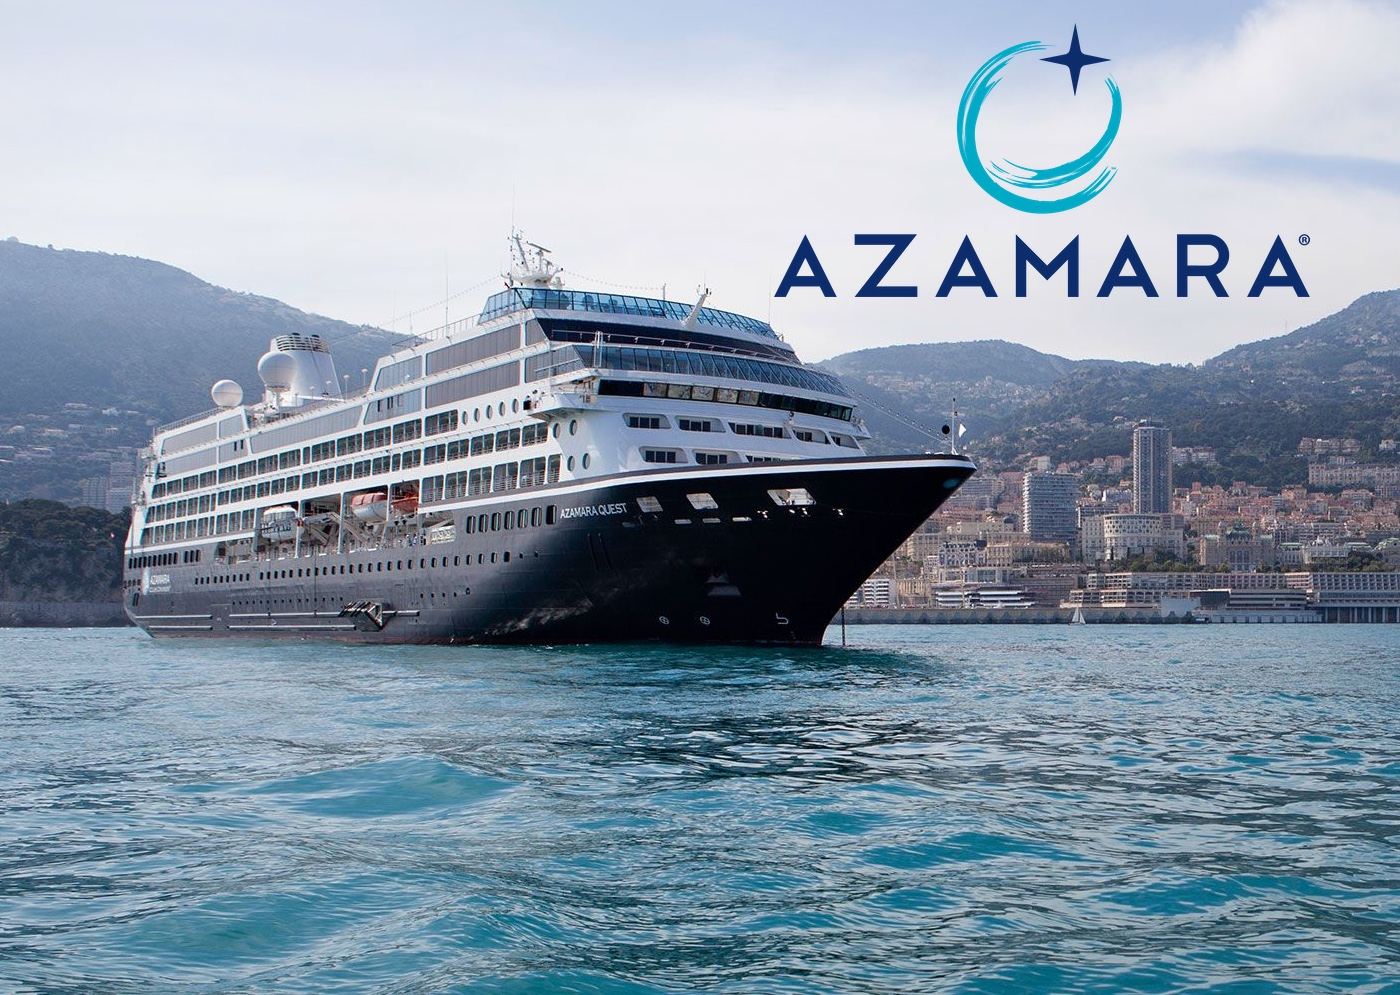 Things You Need To Know About Azamara